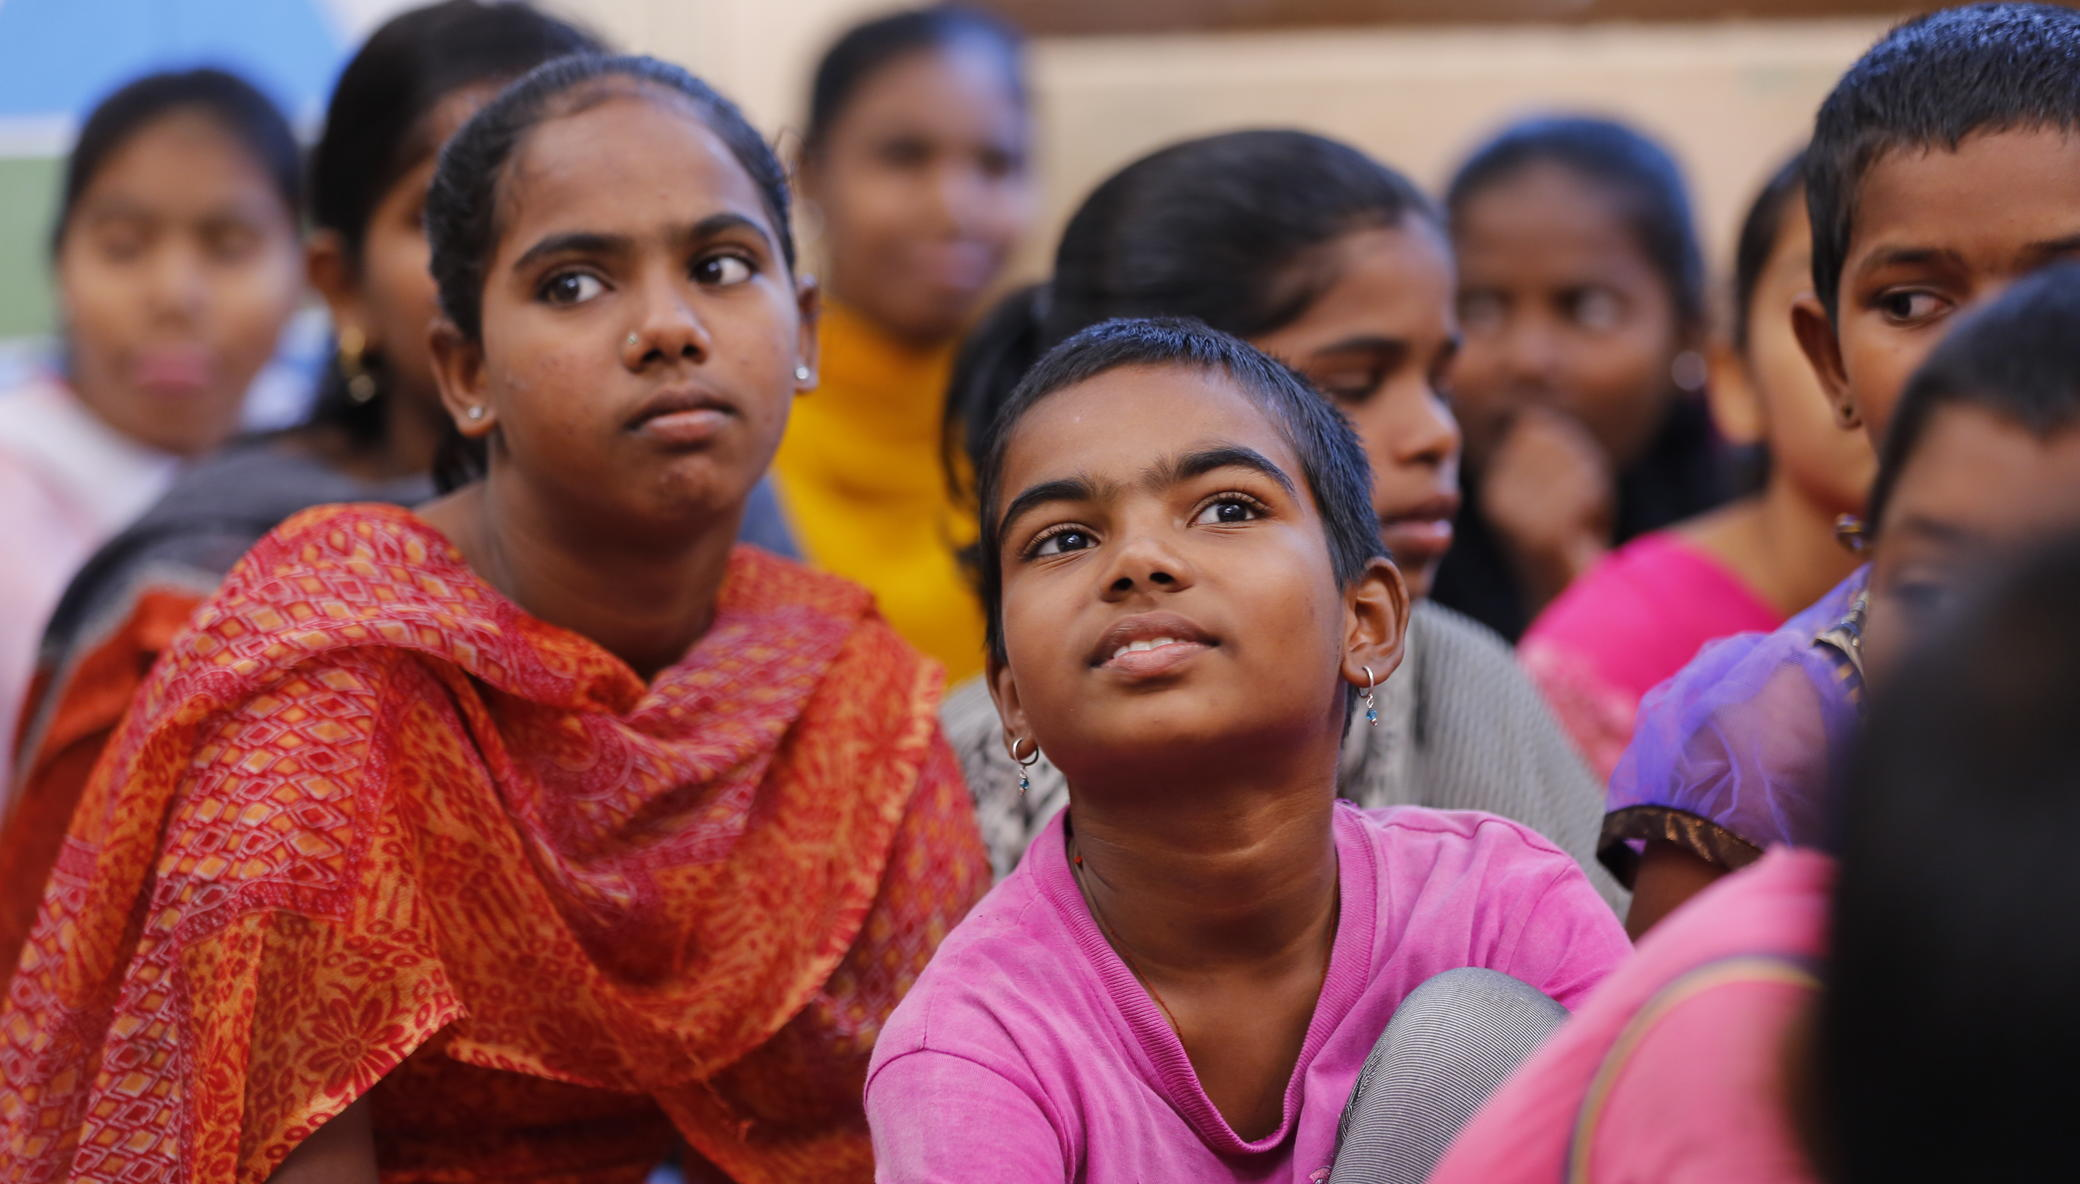 Sponsor food, education, shelter to Orphans India